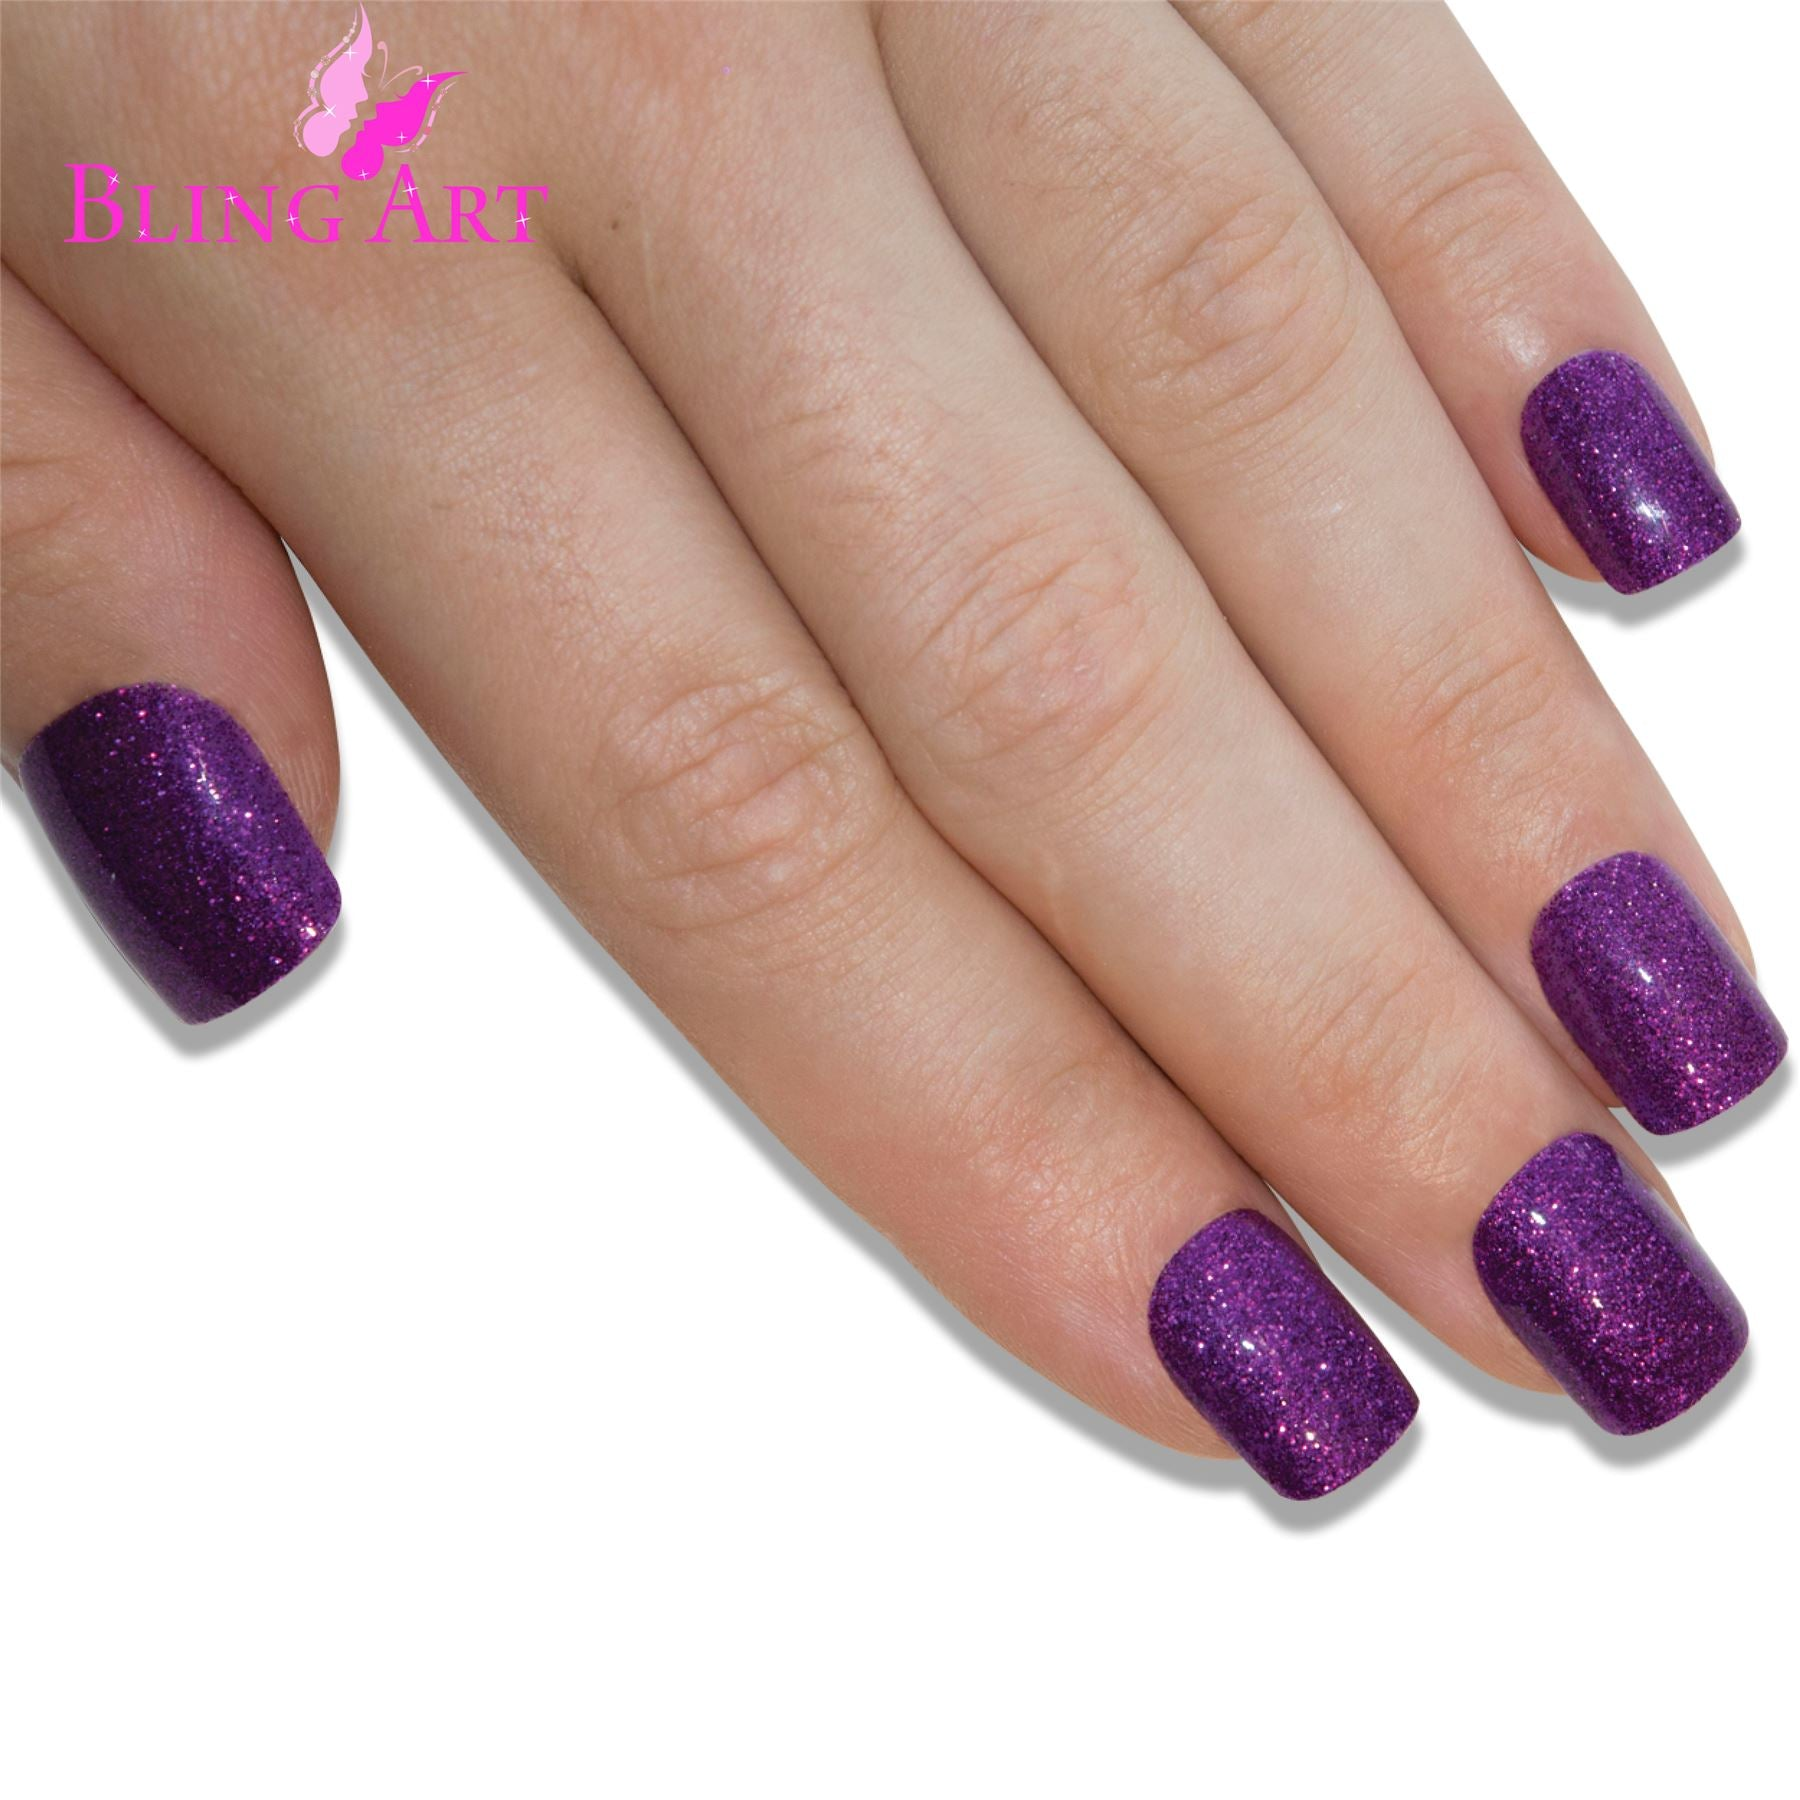 False Nails by Bling Art Purple Gel French Manicure Fake Medium Tips with Glue